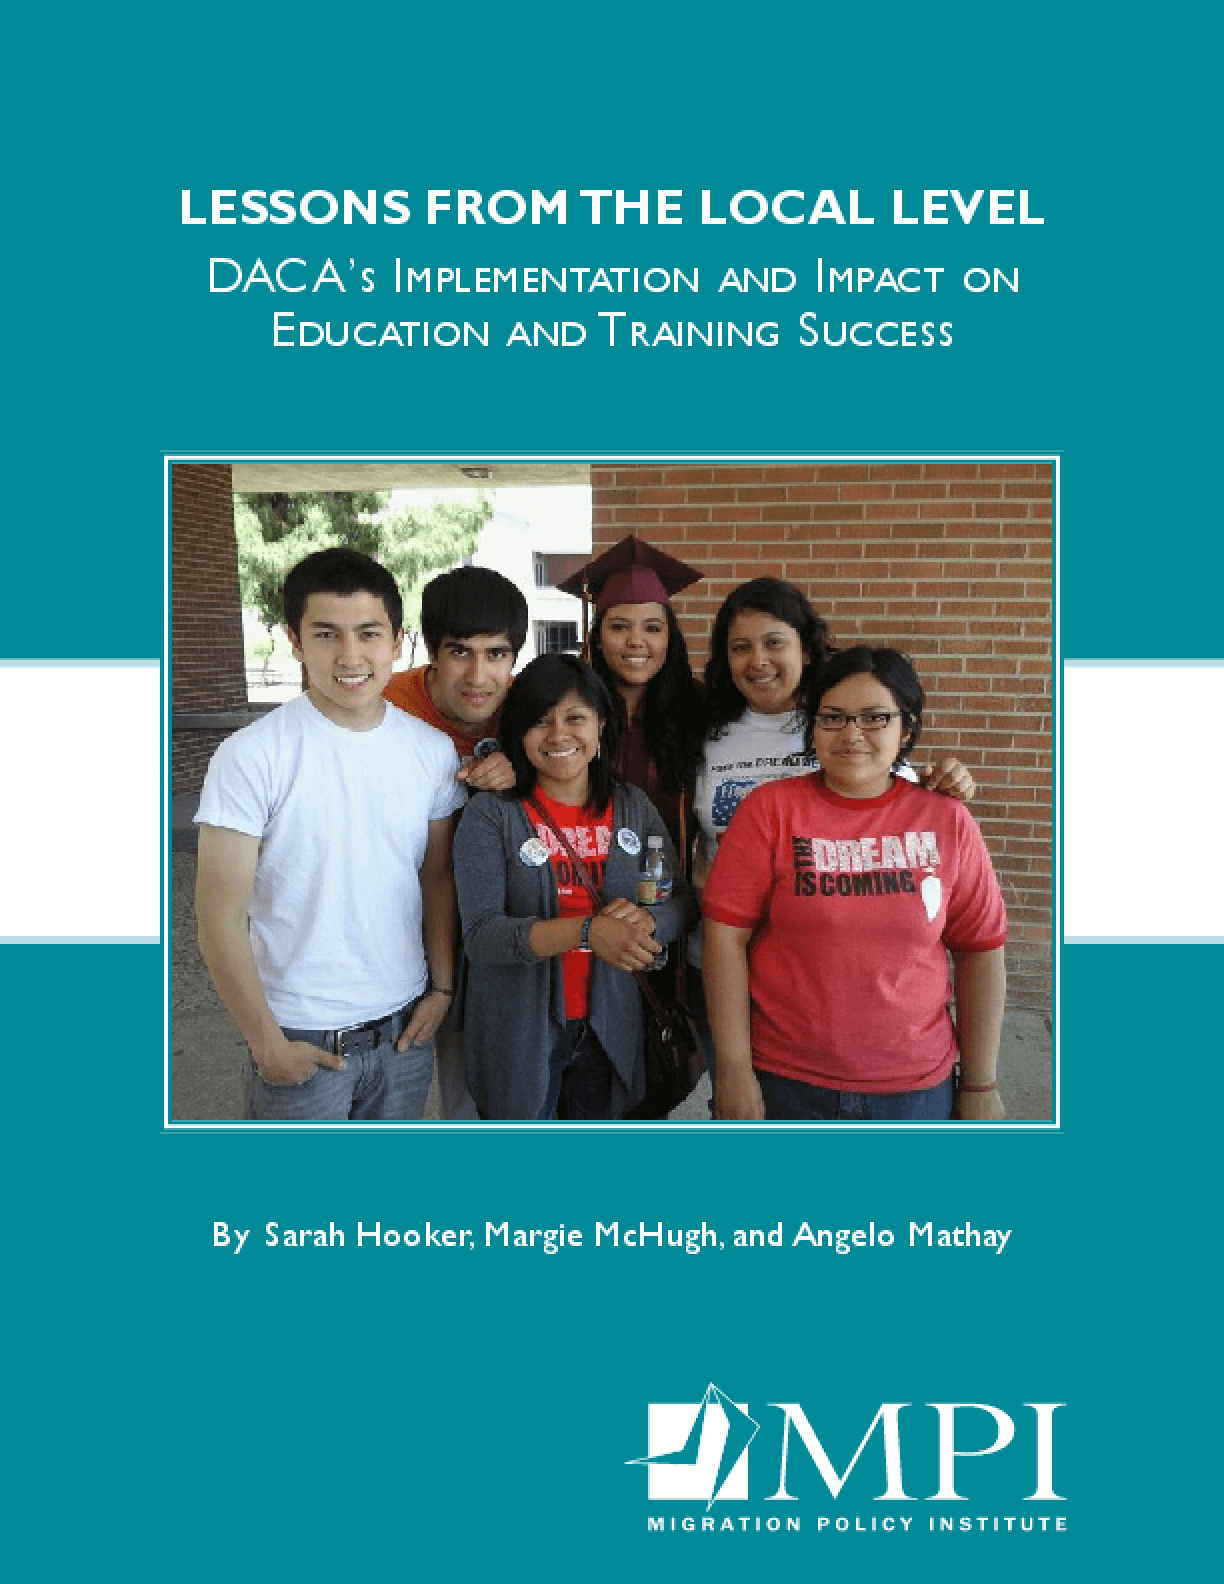 Lessons From the Local Level: DACA's Implementation and Impact on Education and Training Success